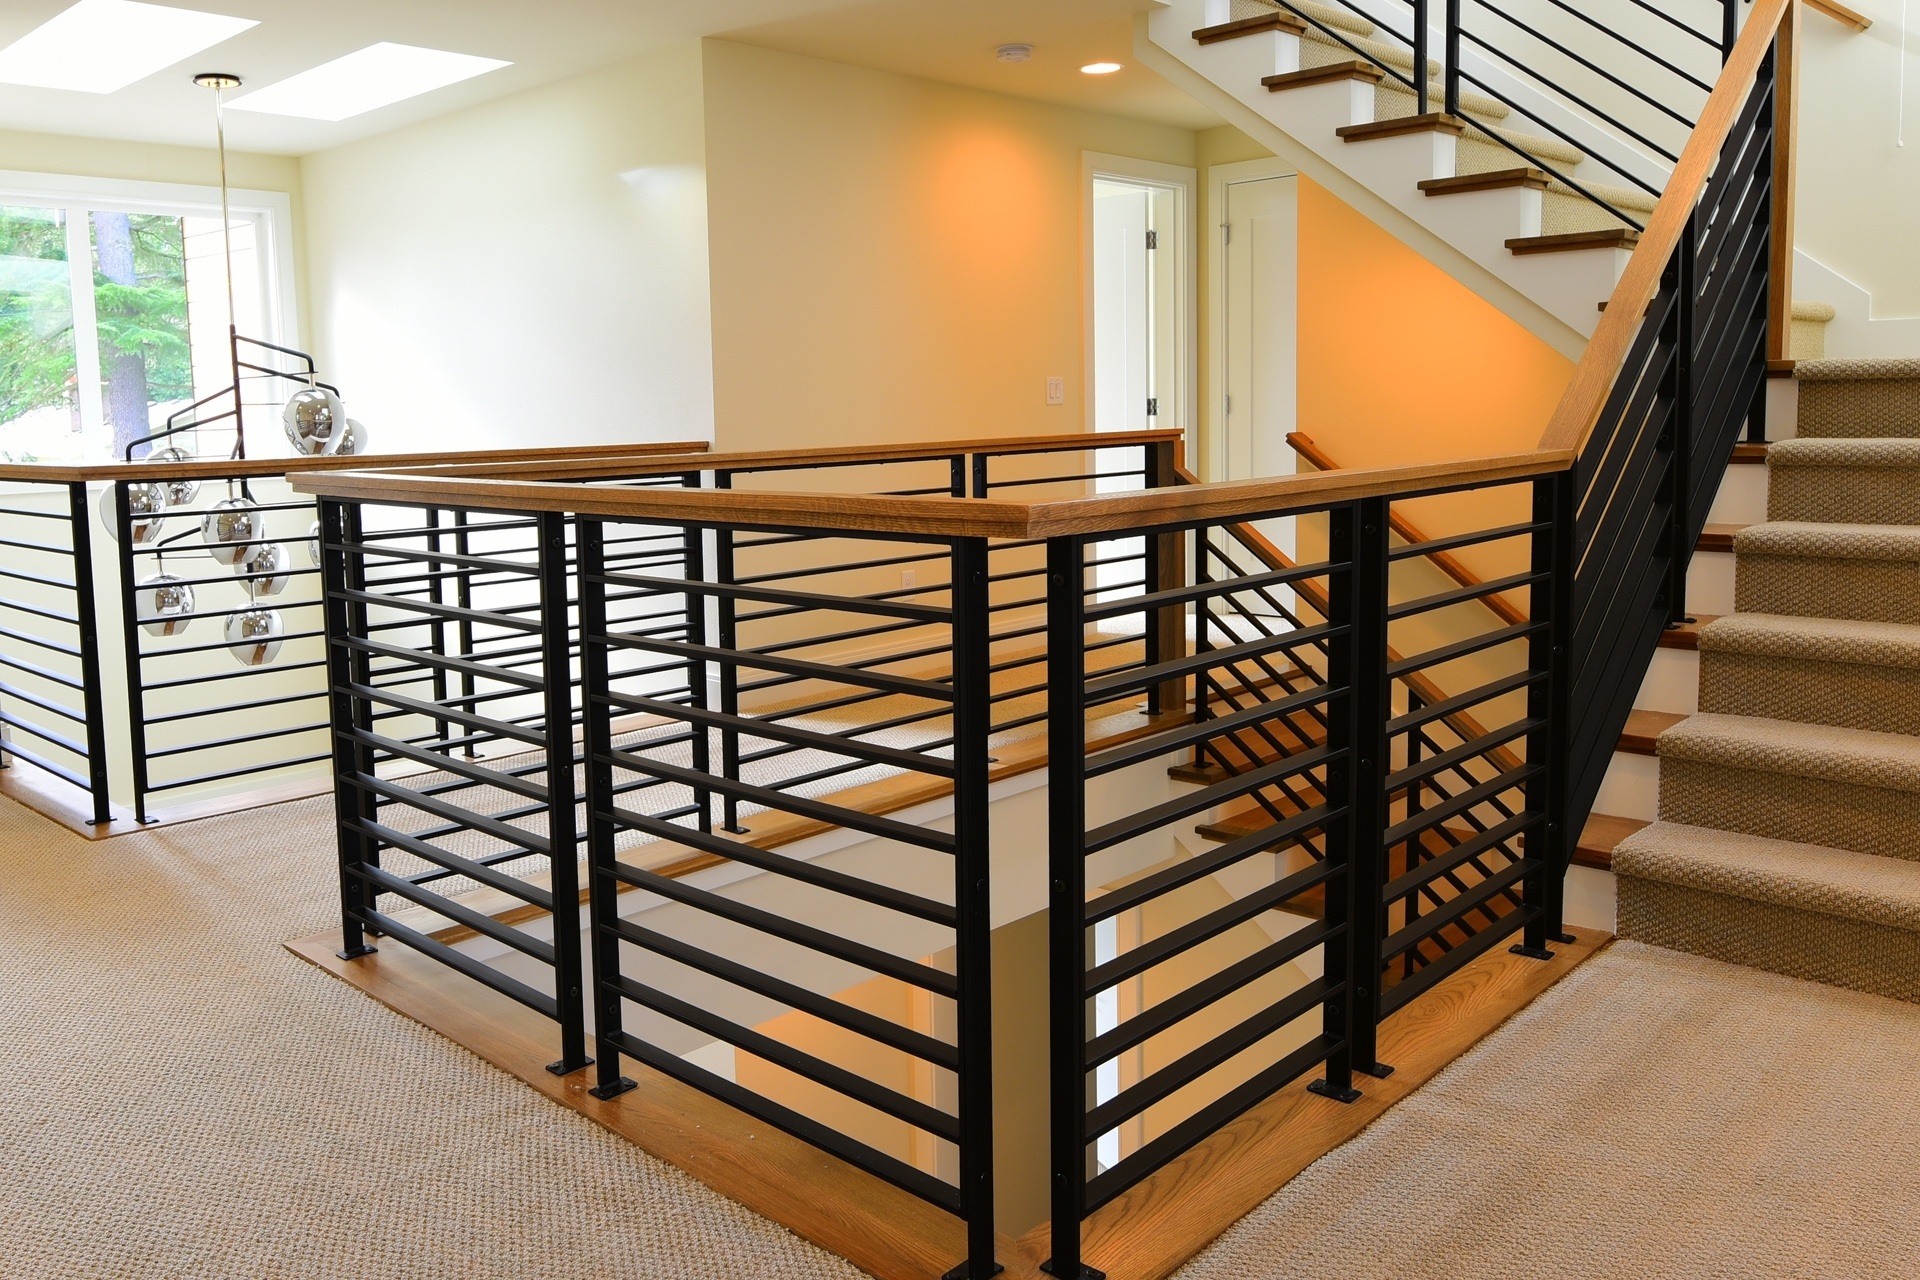 Stair Systems Stairs Stair Parts Newels Balusters And   Tubular Design For Stairs   Finished   Minimalist   Decorative Wood Railing   Contemporary   Home Tower